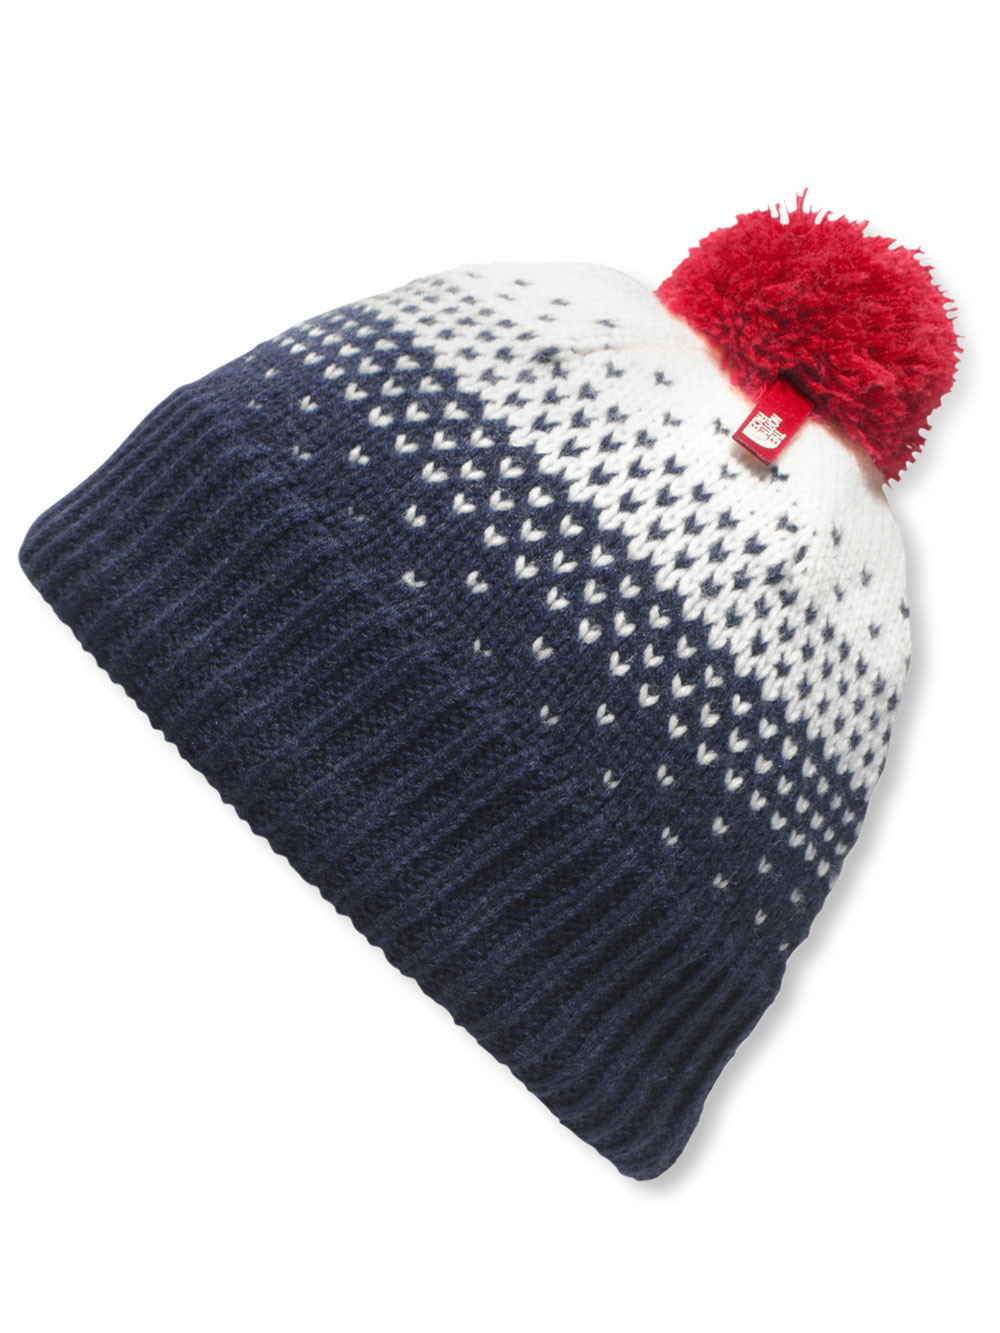 The North Face Youth Pom Pom Beanie (Sizes S - L) - cosmic blue, s